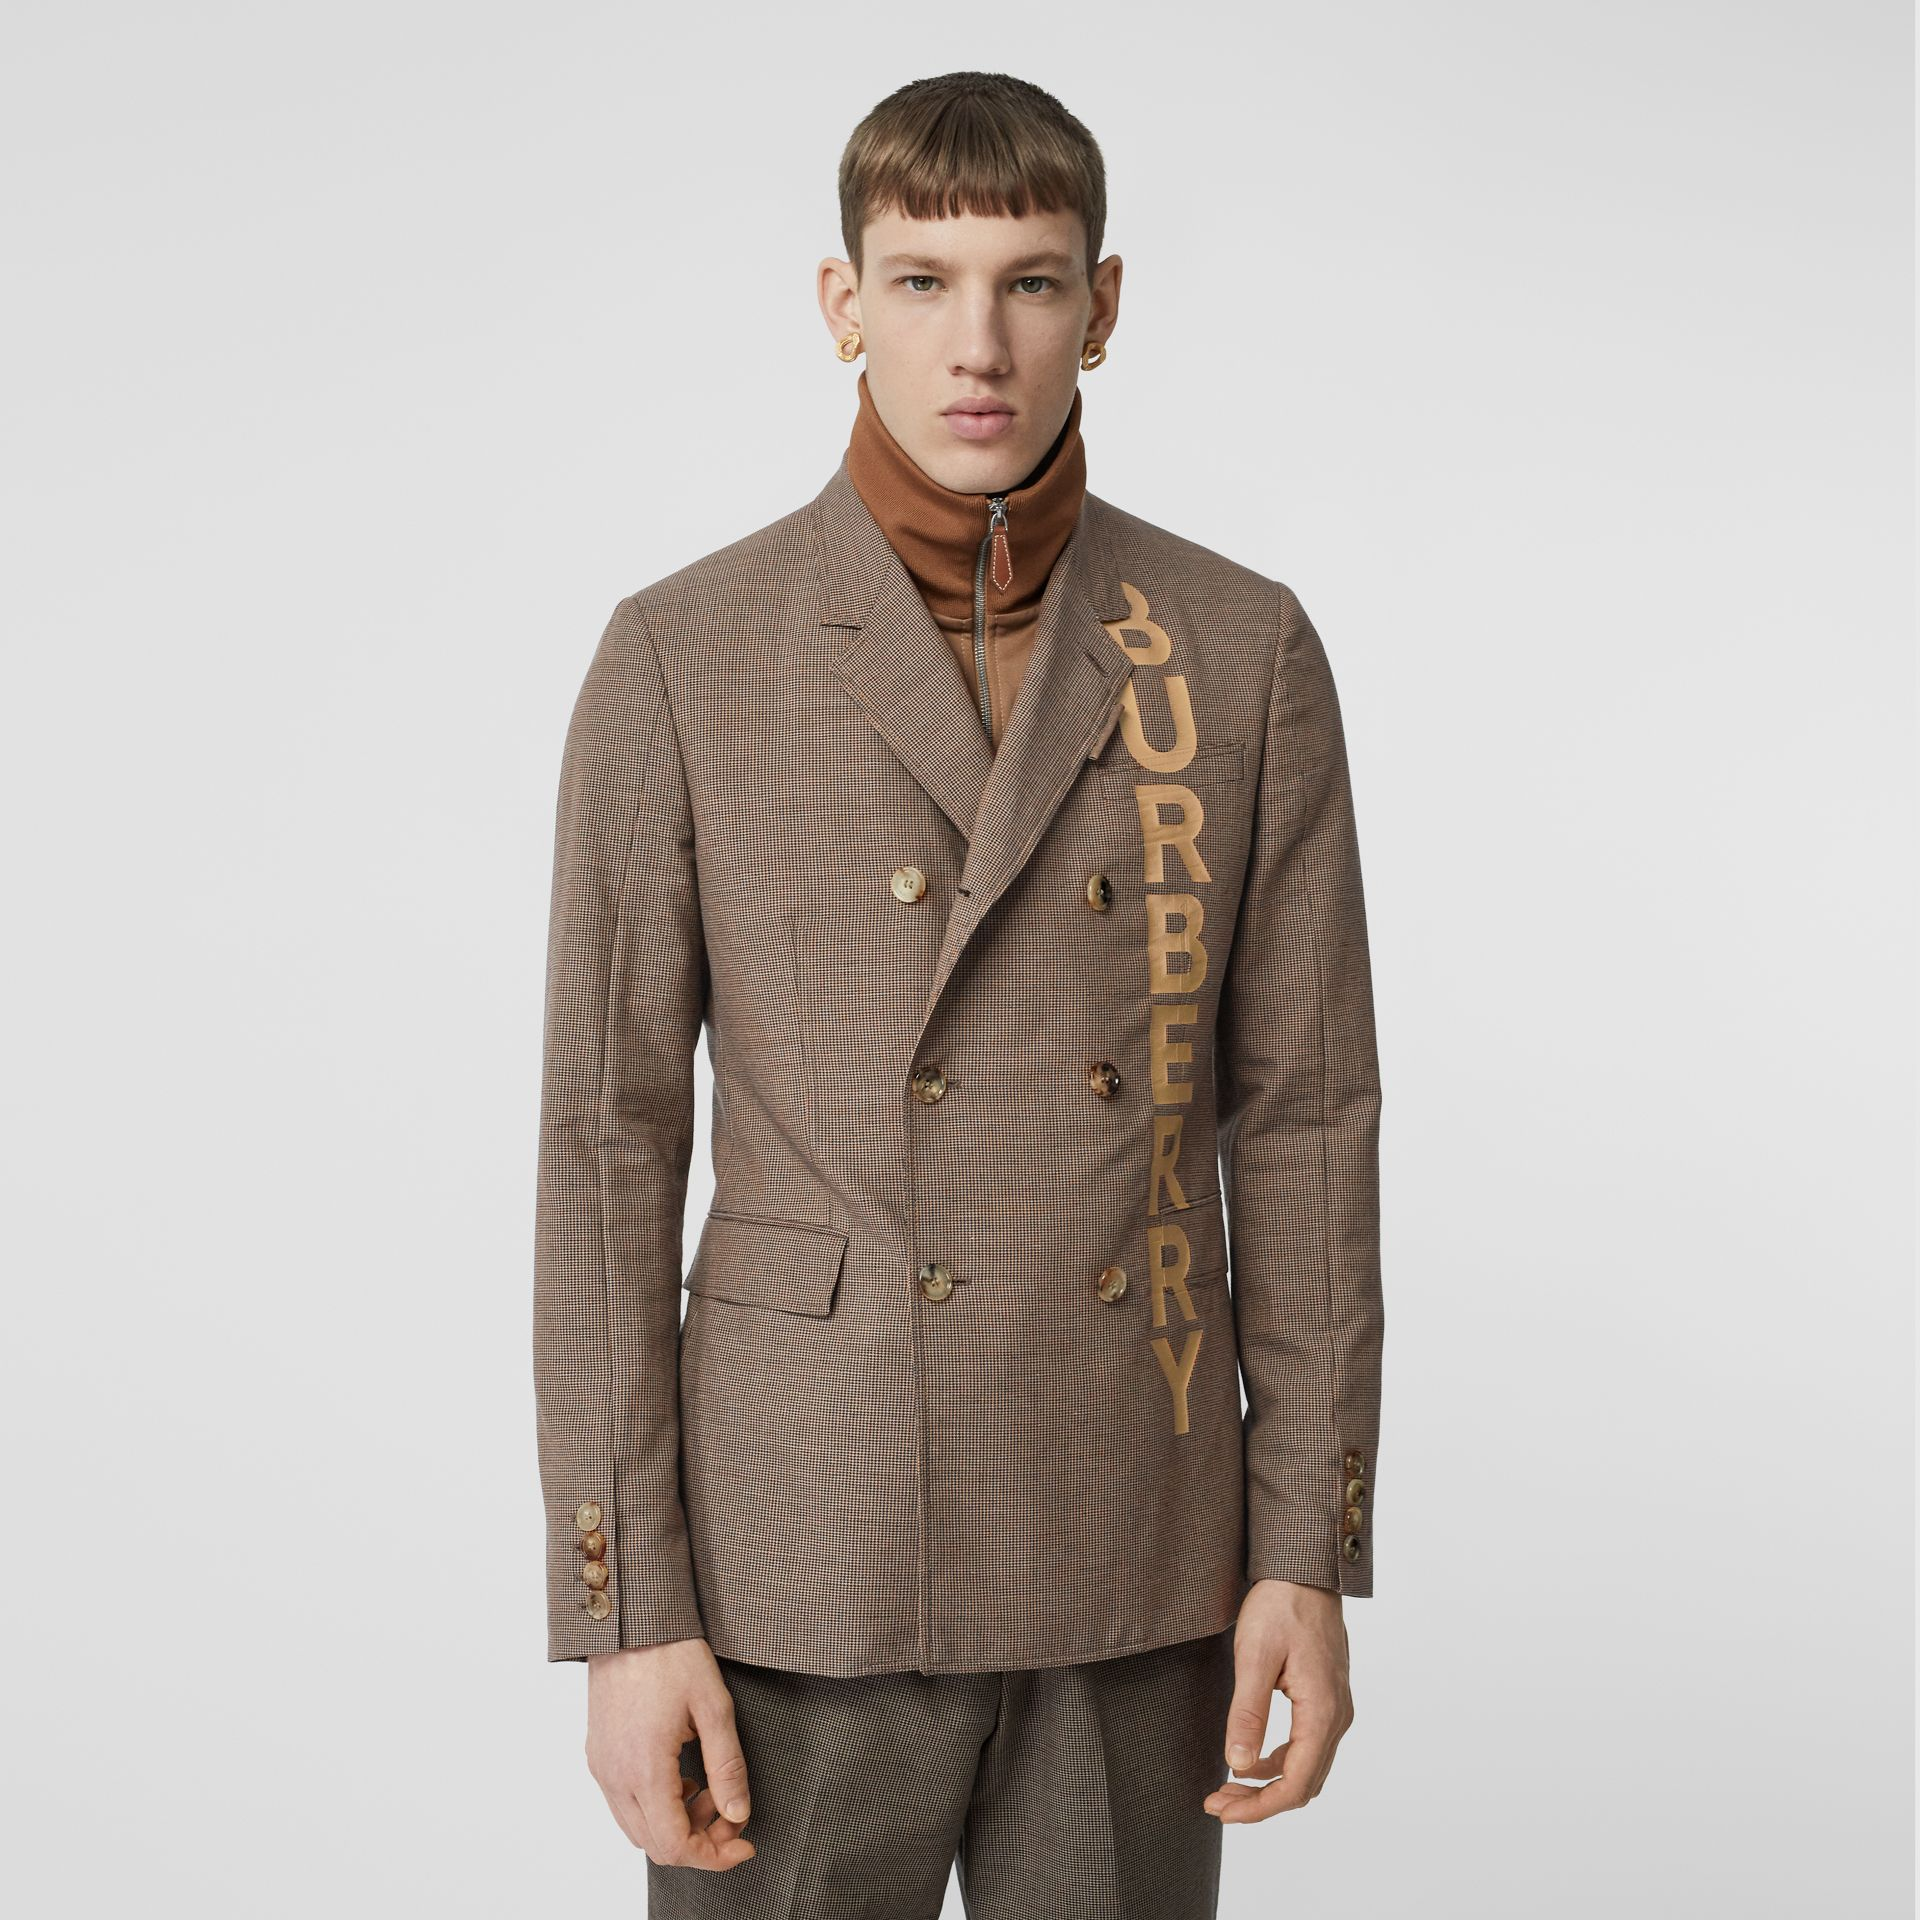 Slim Fit Logo Print Cotton Wool Blend Tailored Jacket in Beige - Men | Burberry - gallery image 5